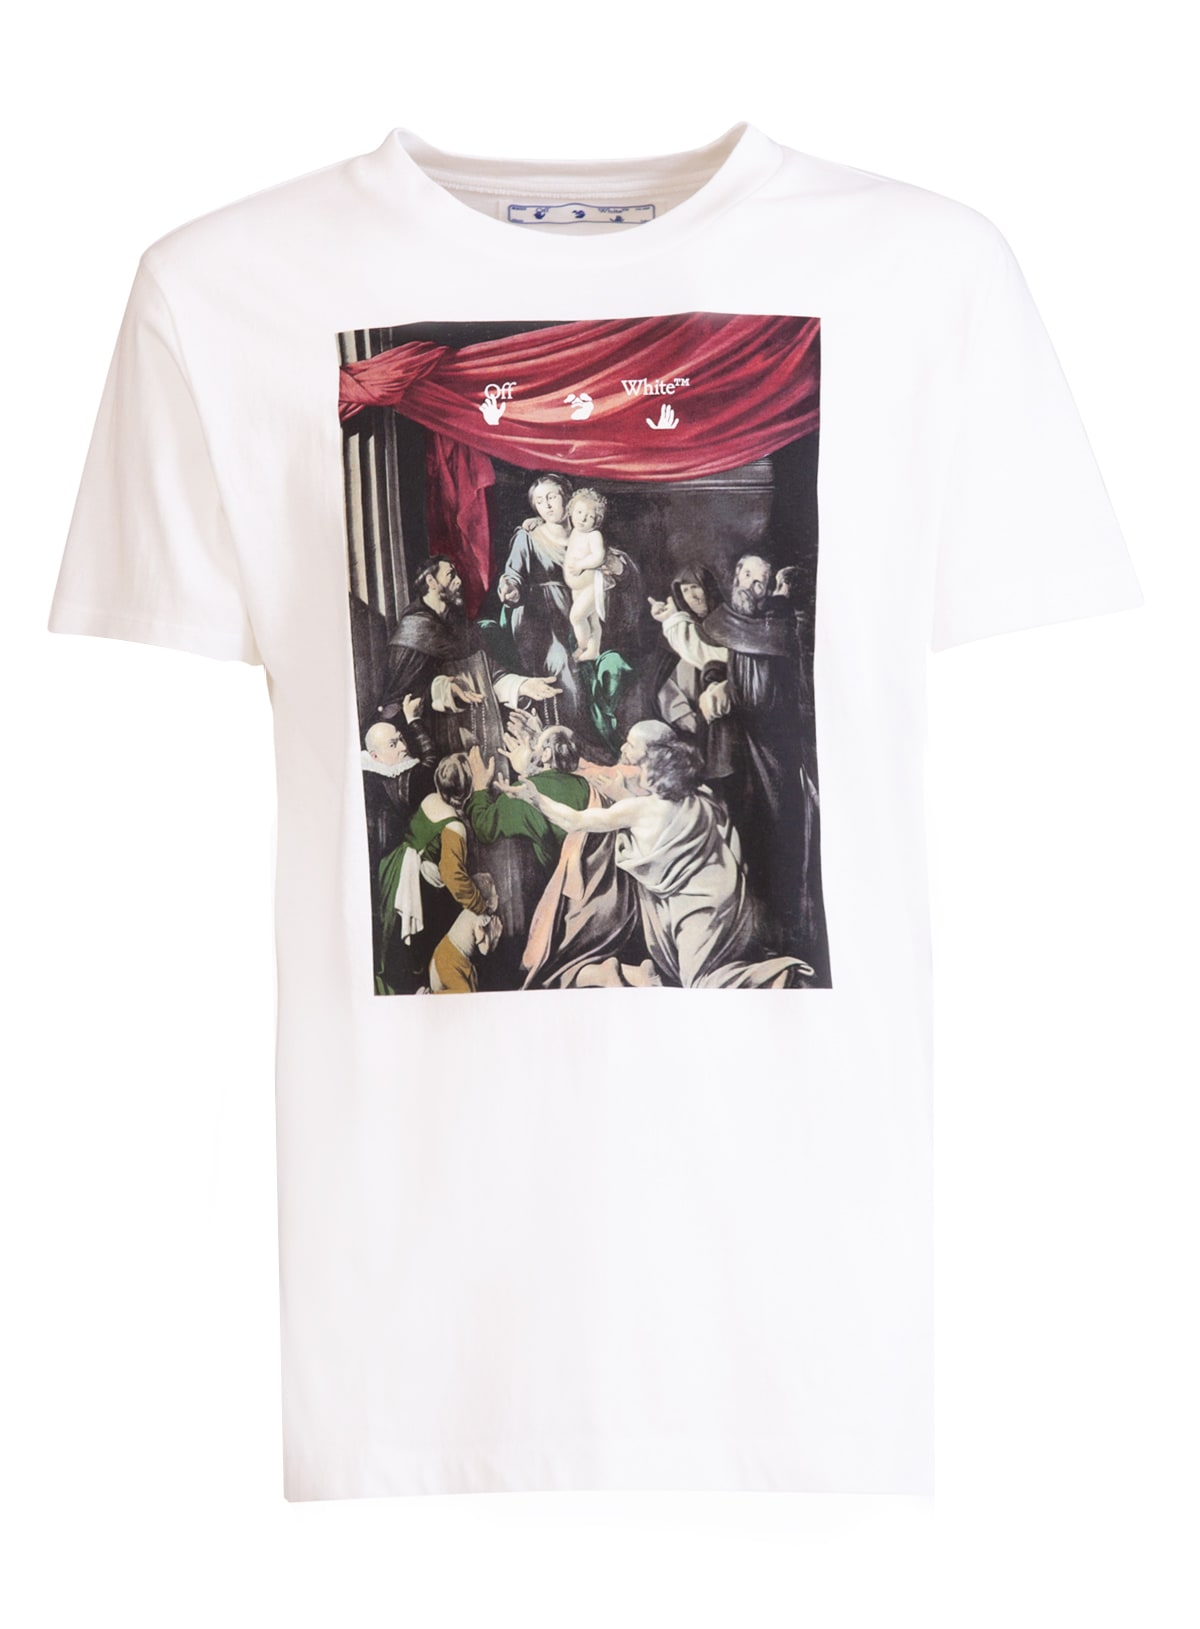 Off-white Caravaggio Painting T-shirt